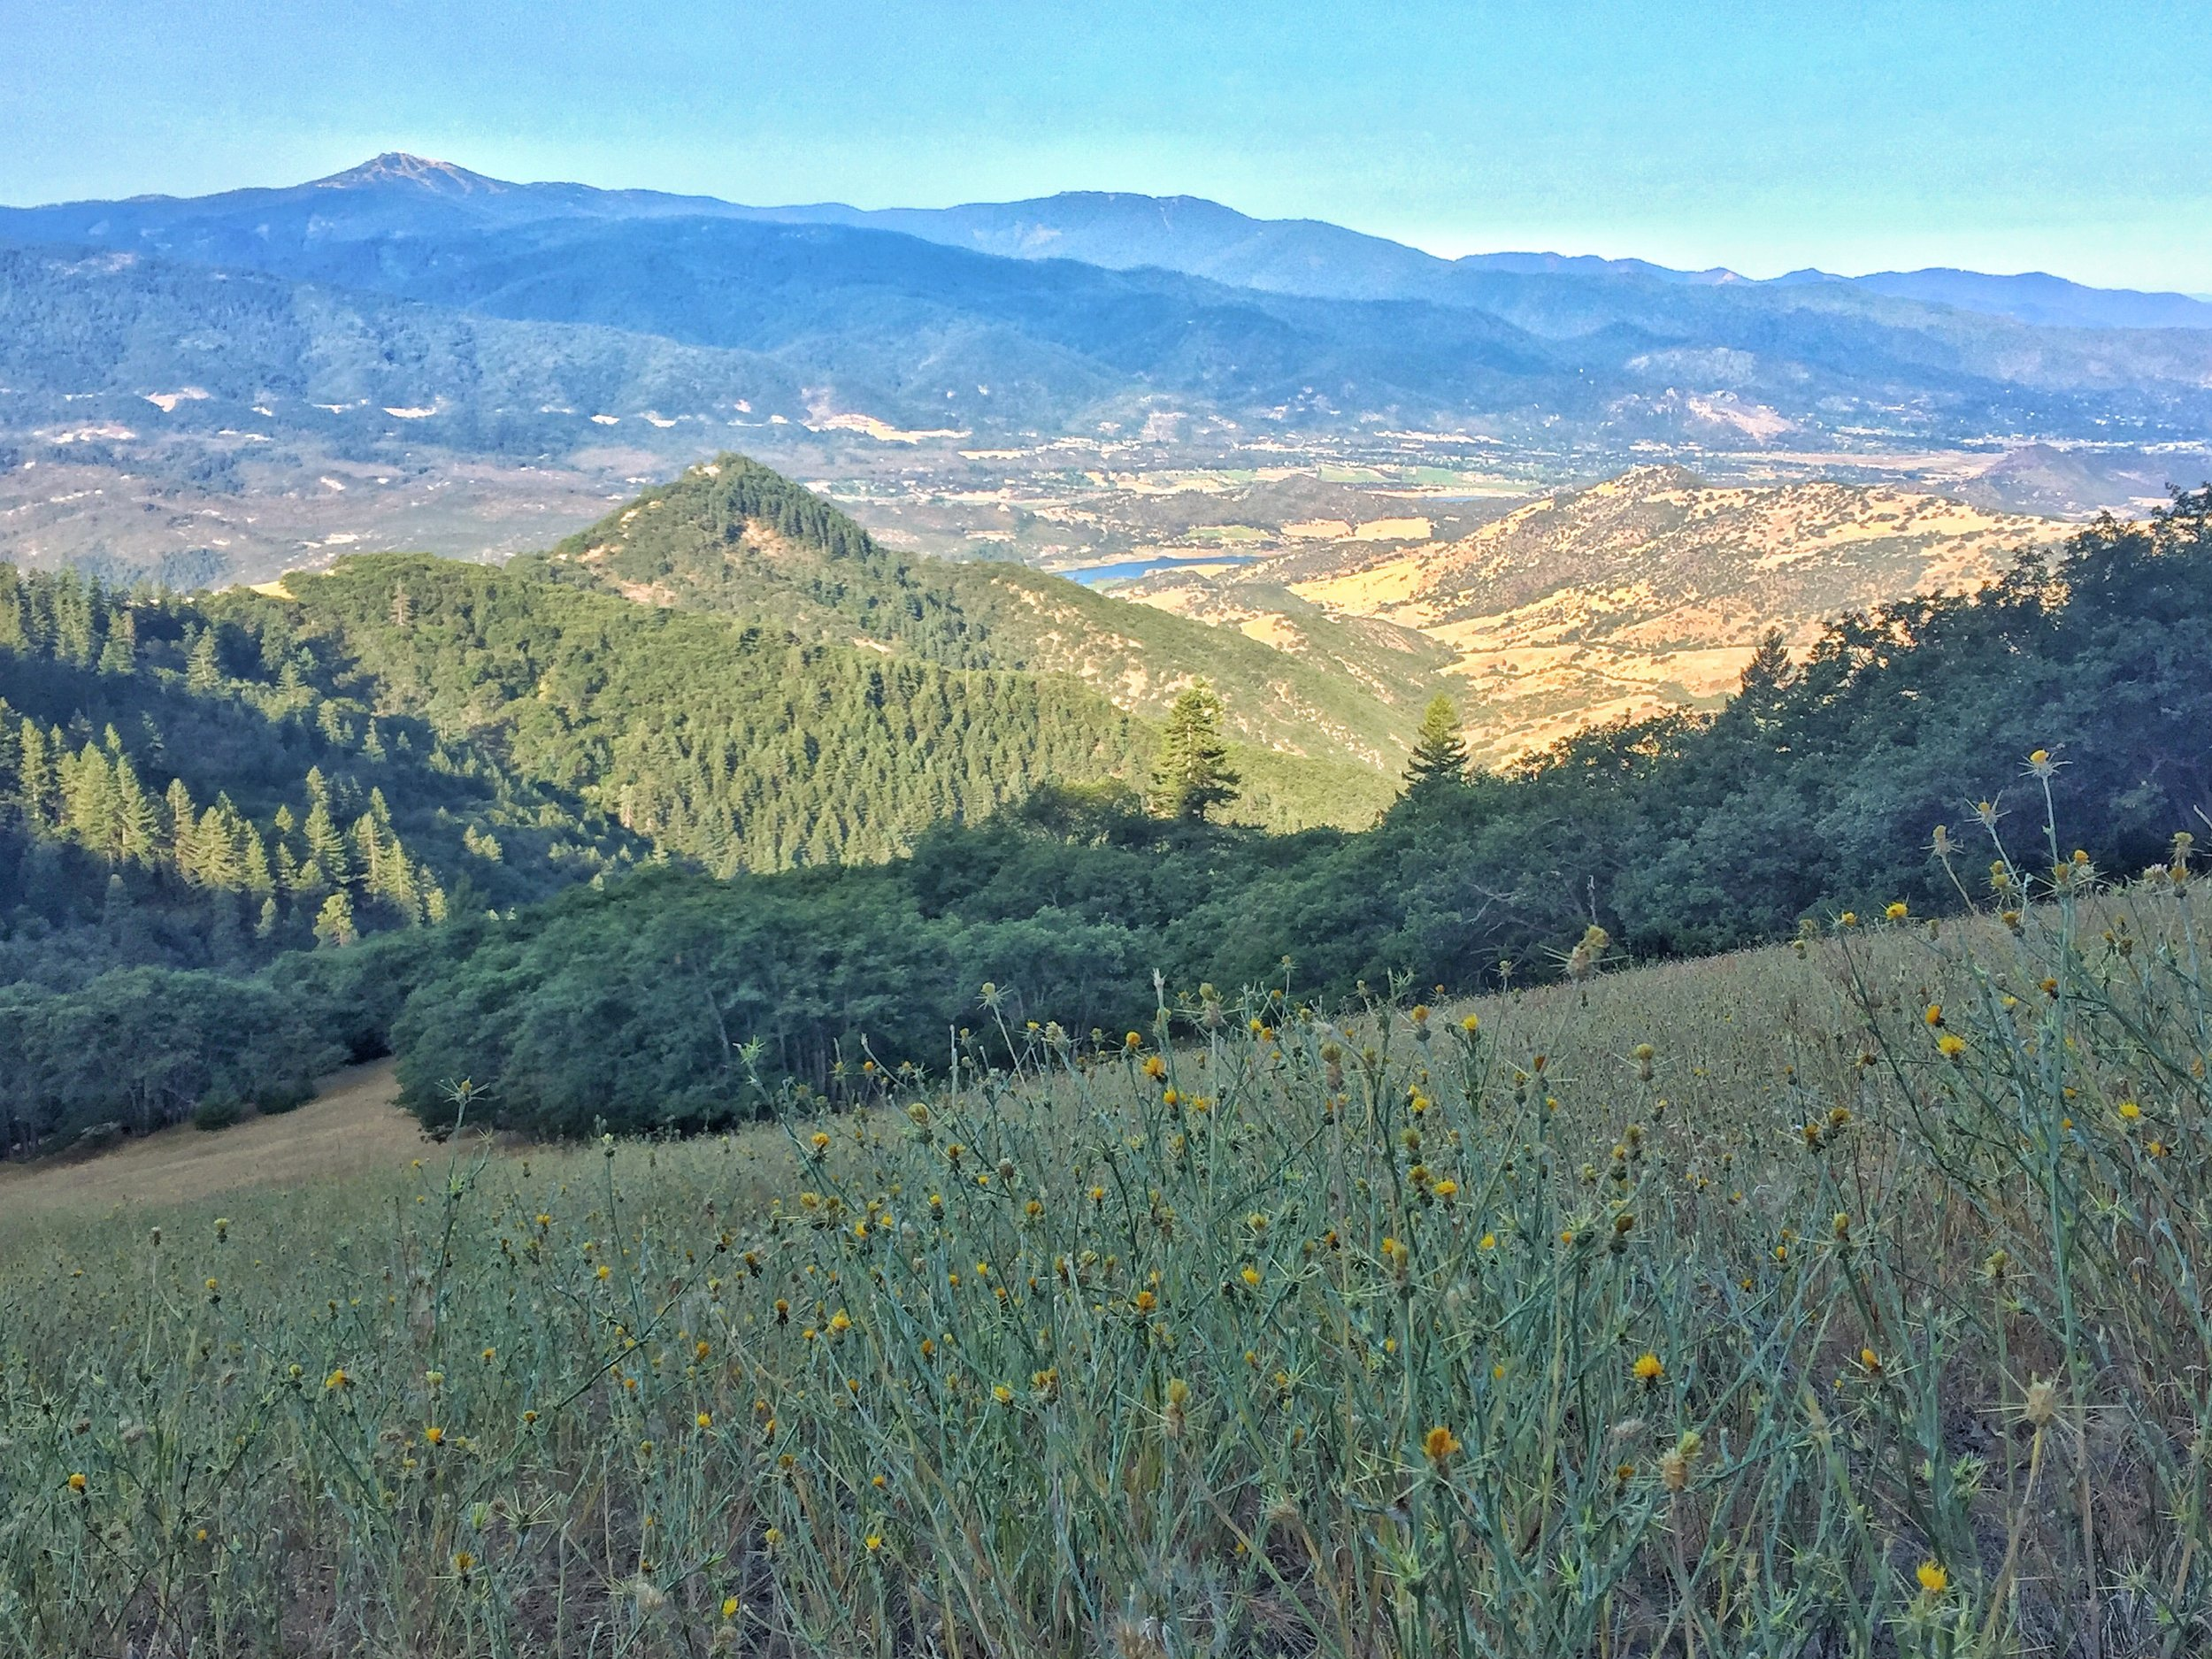 A slope of yellow star thistle with a view of distant Mt. Ashland across the valley